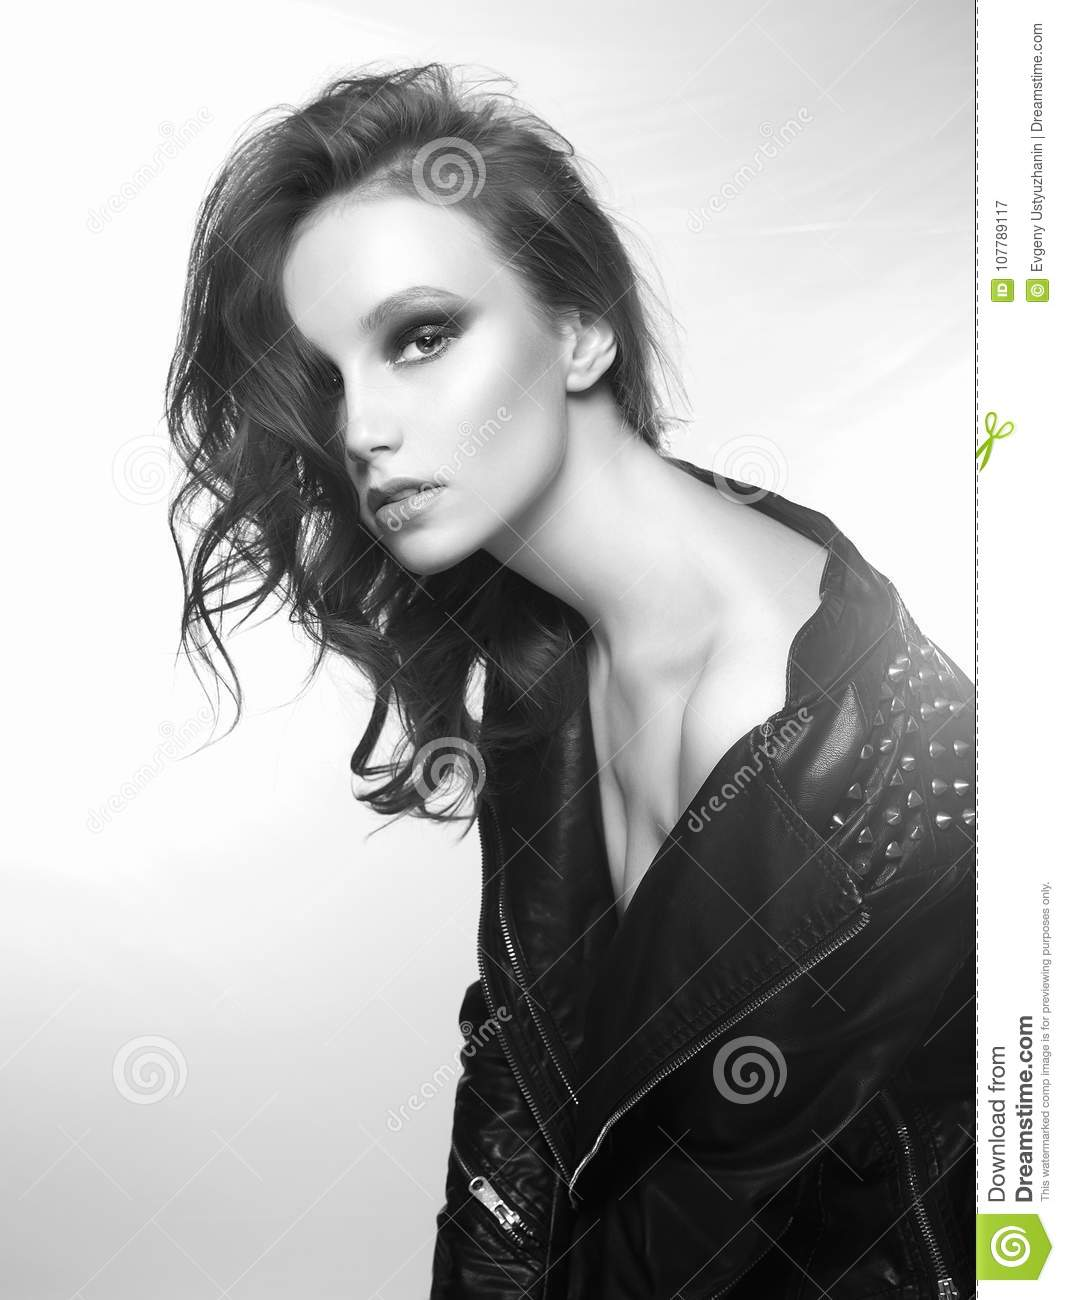 Beautiful young woman in leather coat fashion black and white portrait